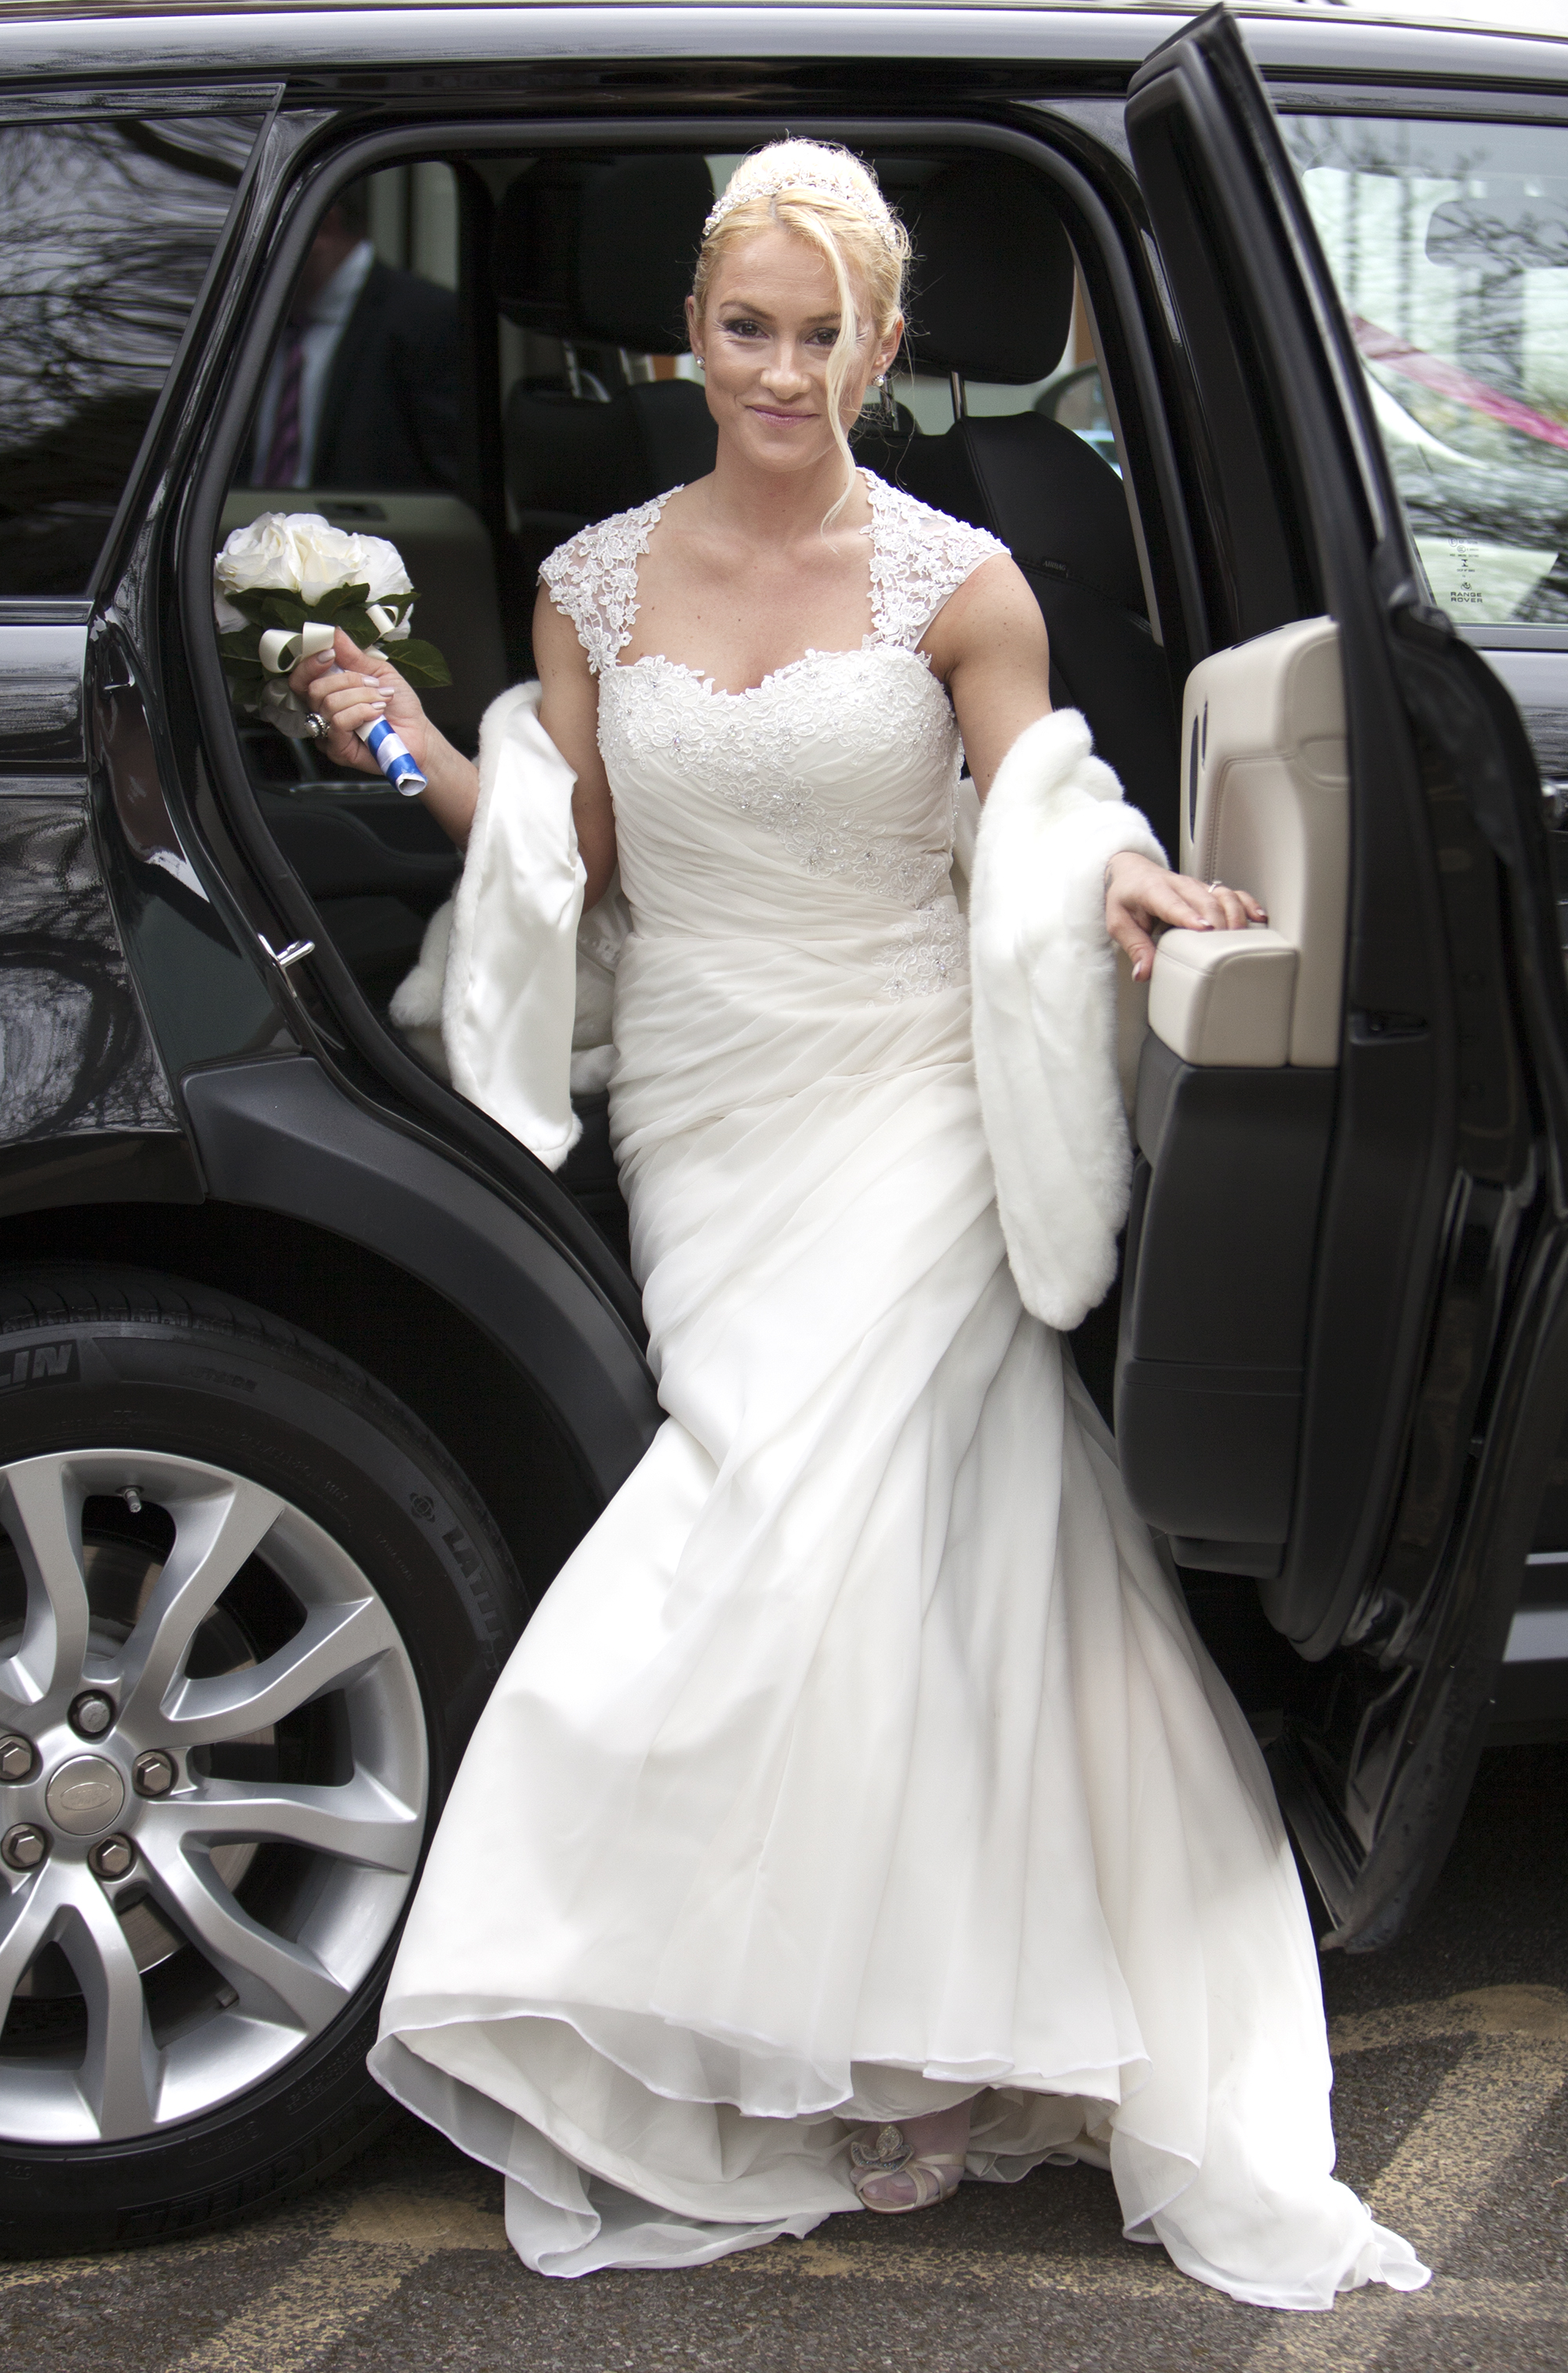 Beautiful bride getting out of car